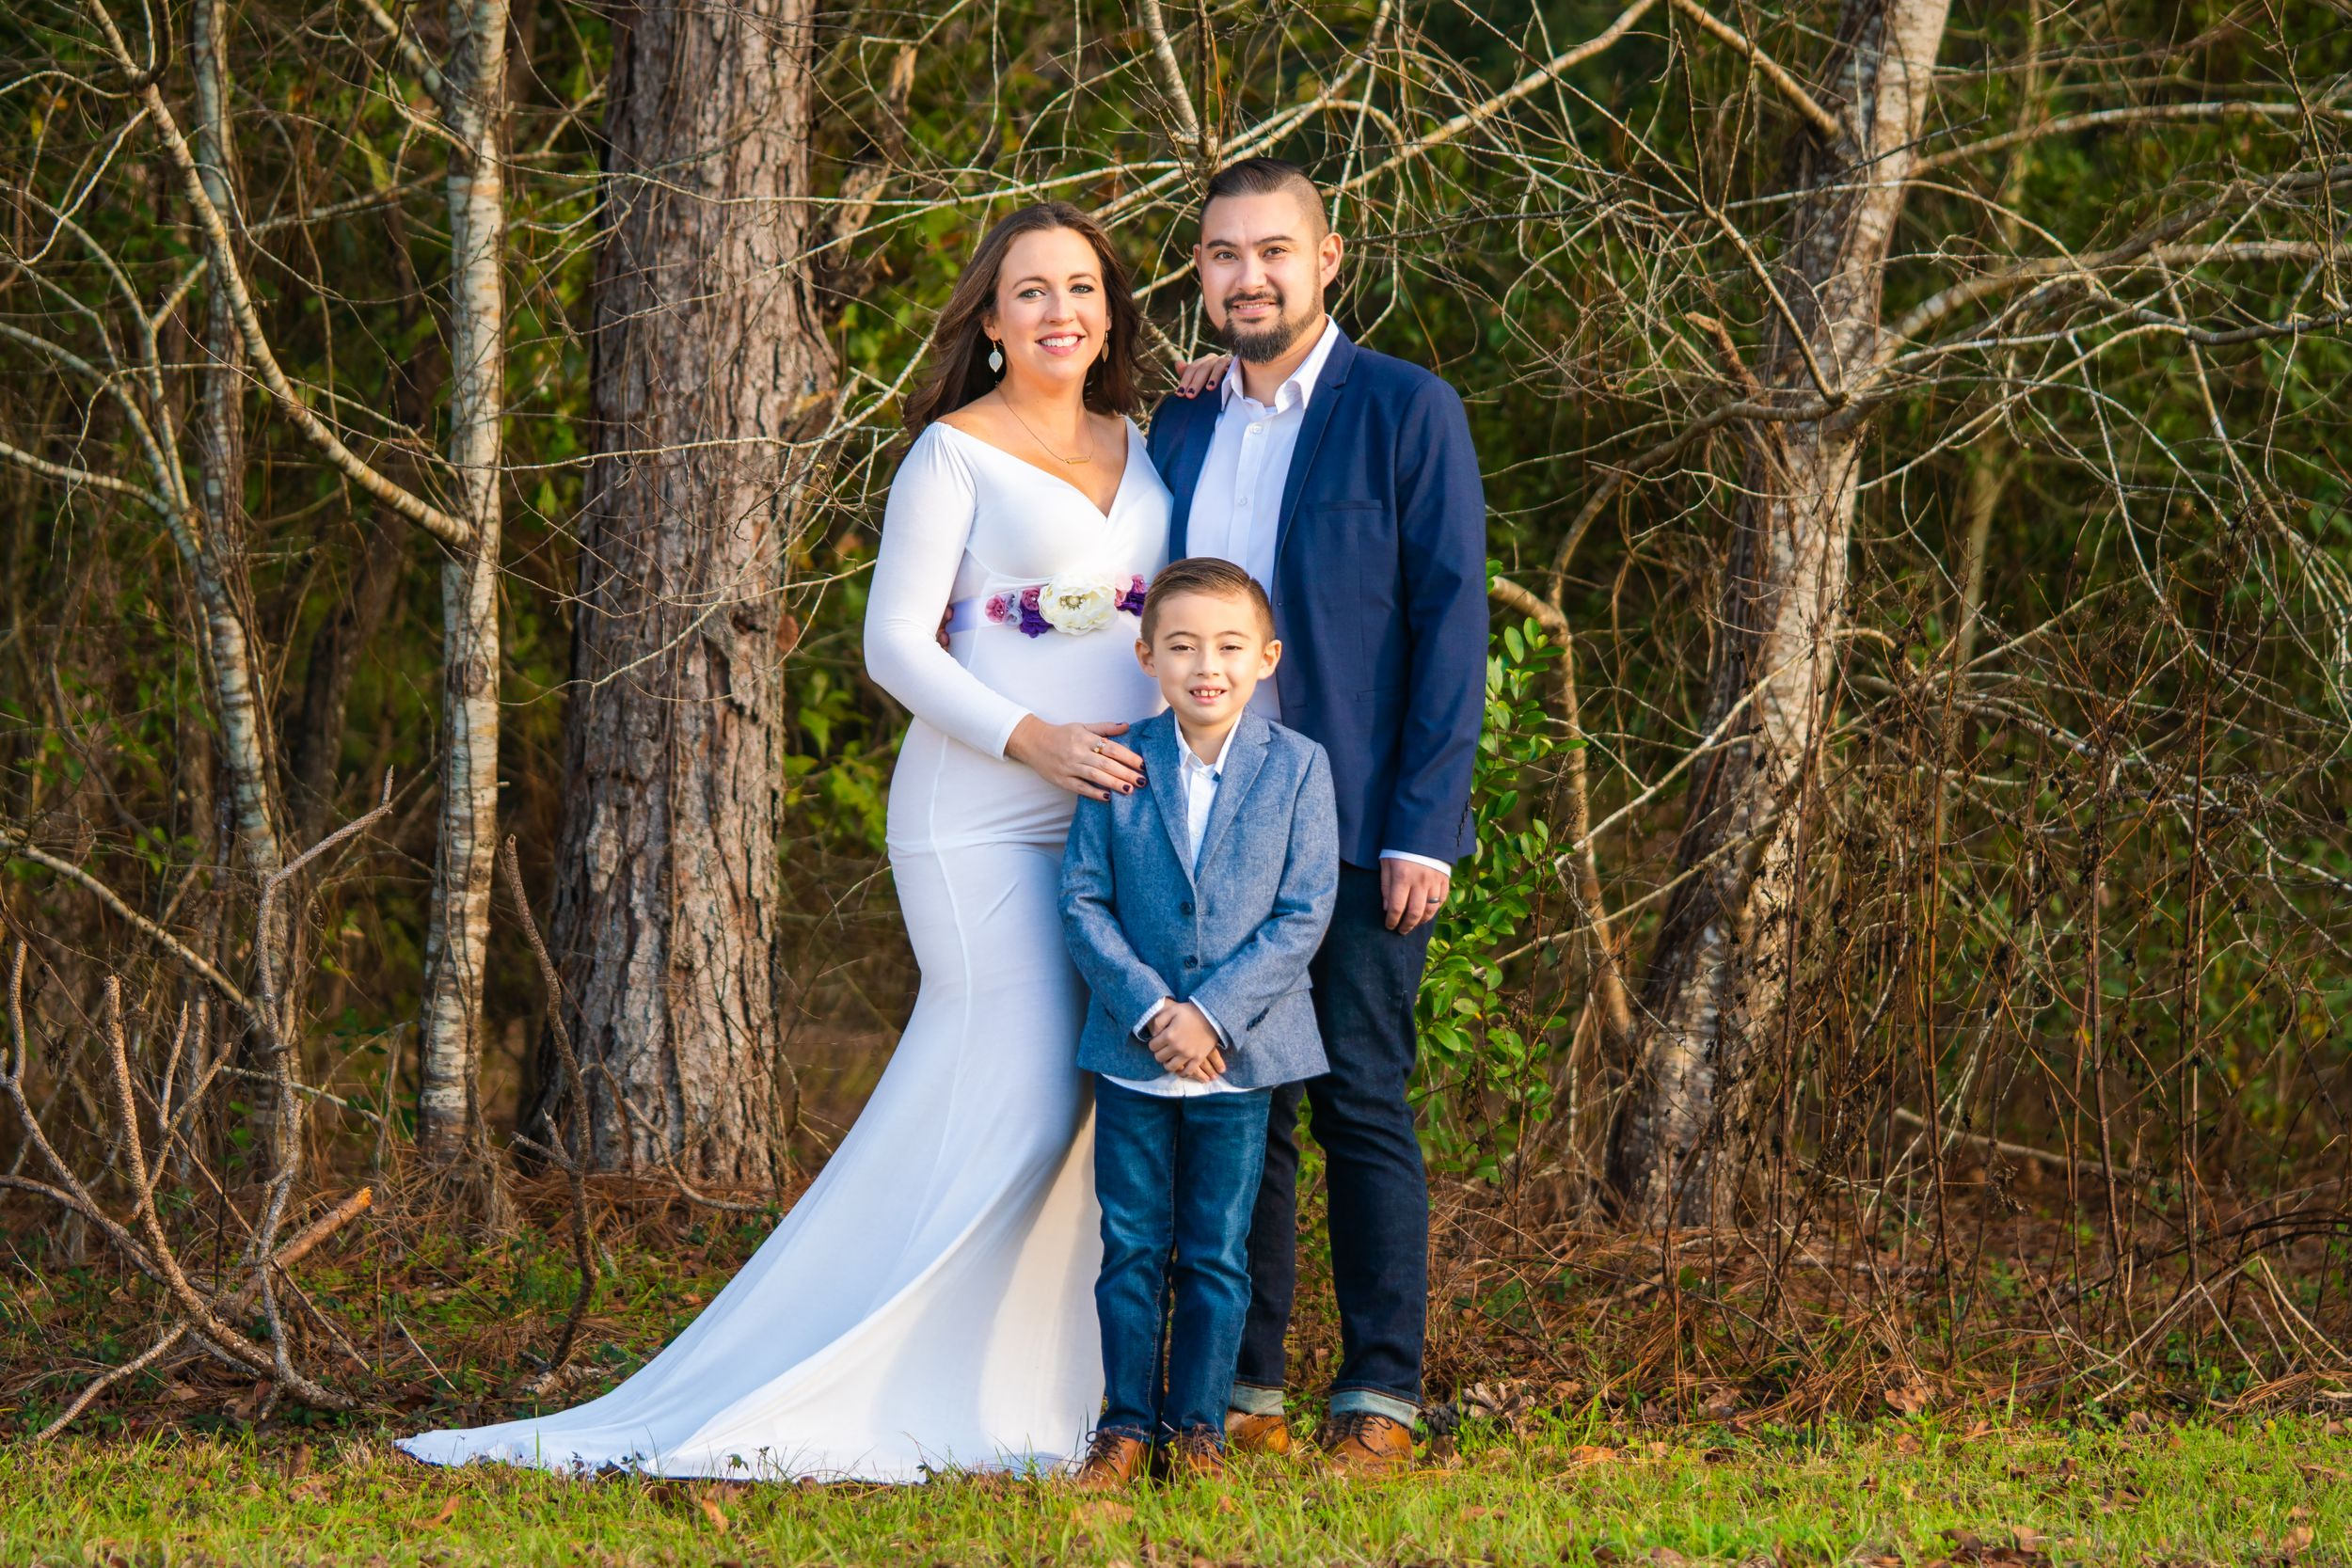 Family Portrait in front of trees at Miccosukee Green Way